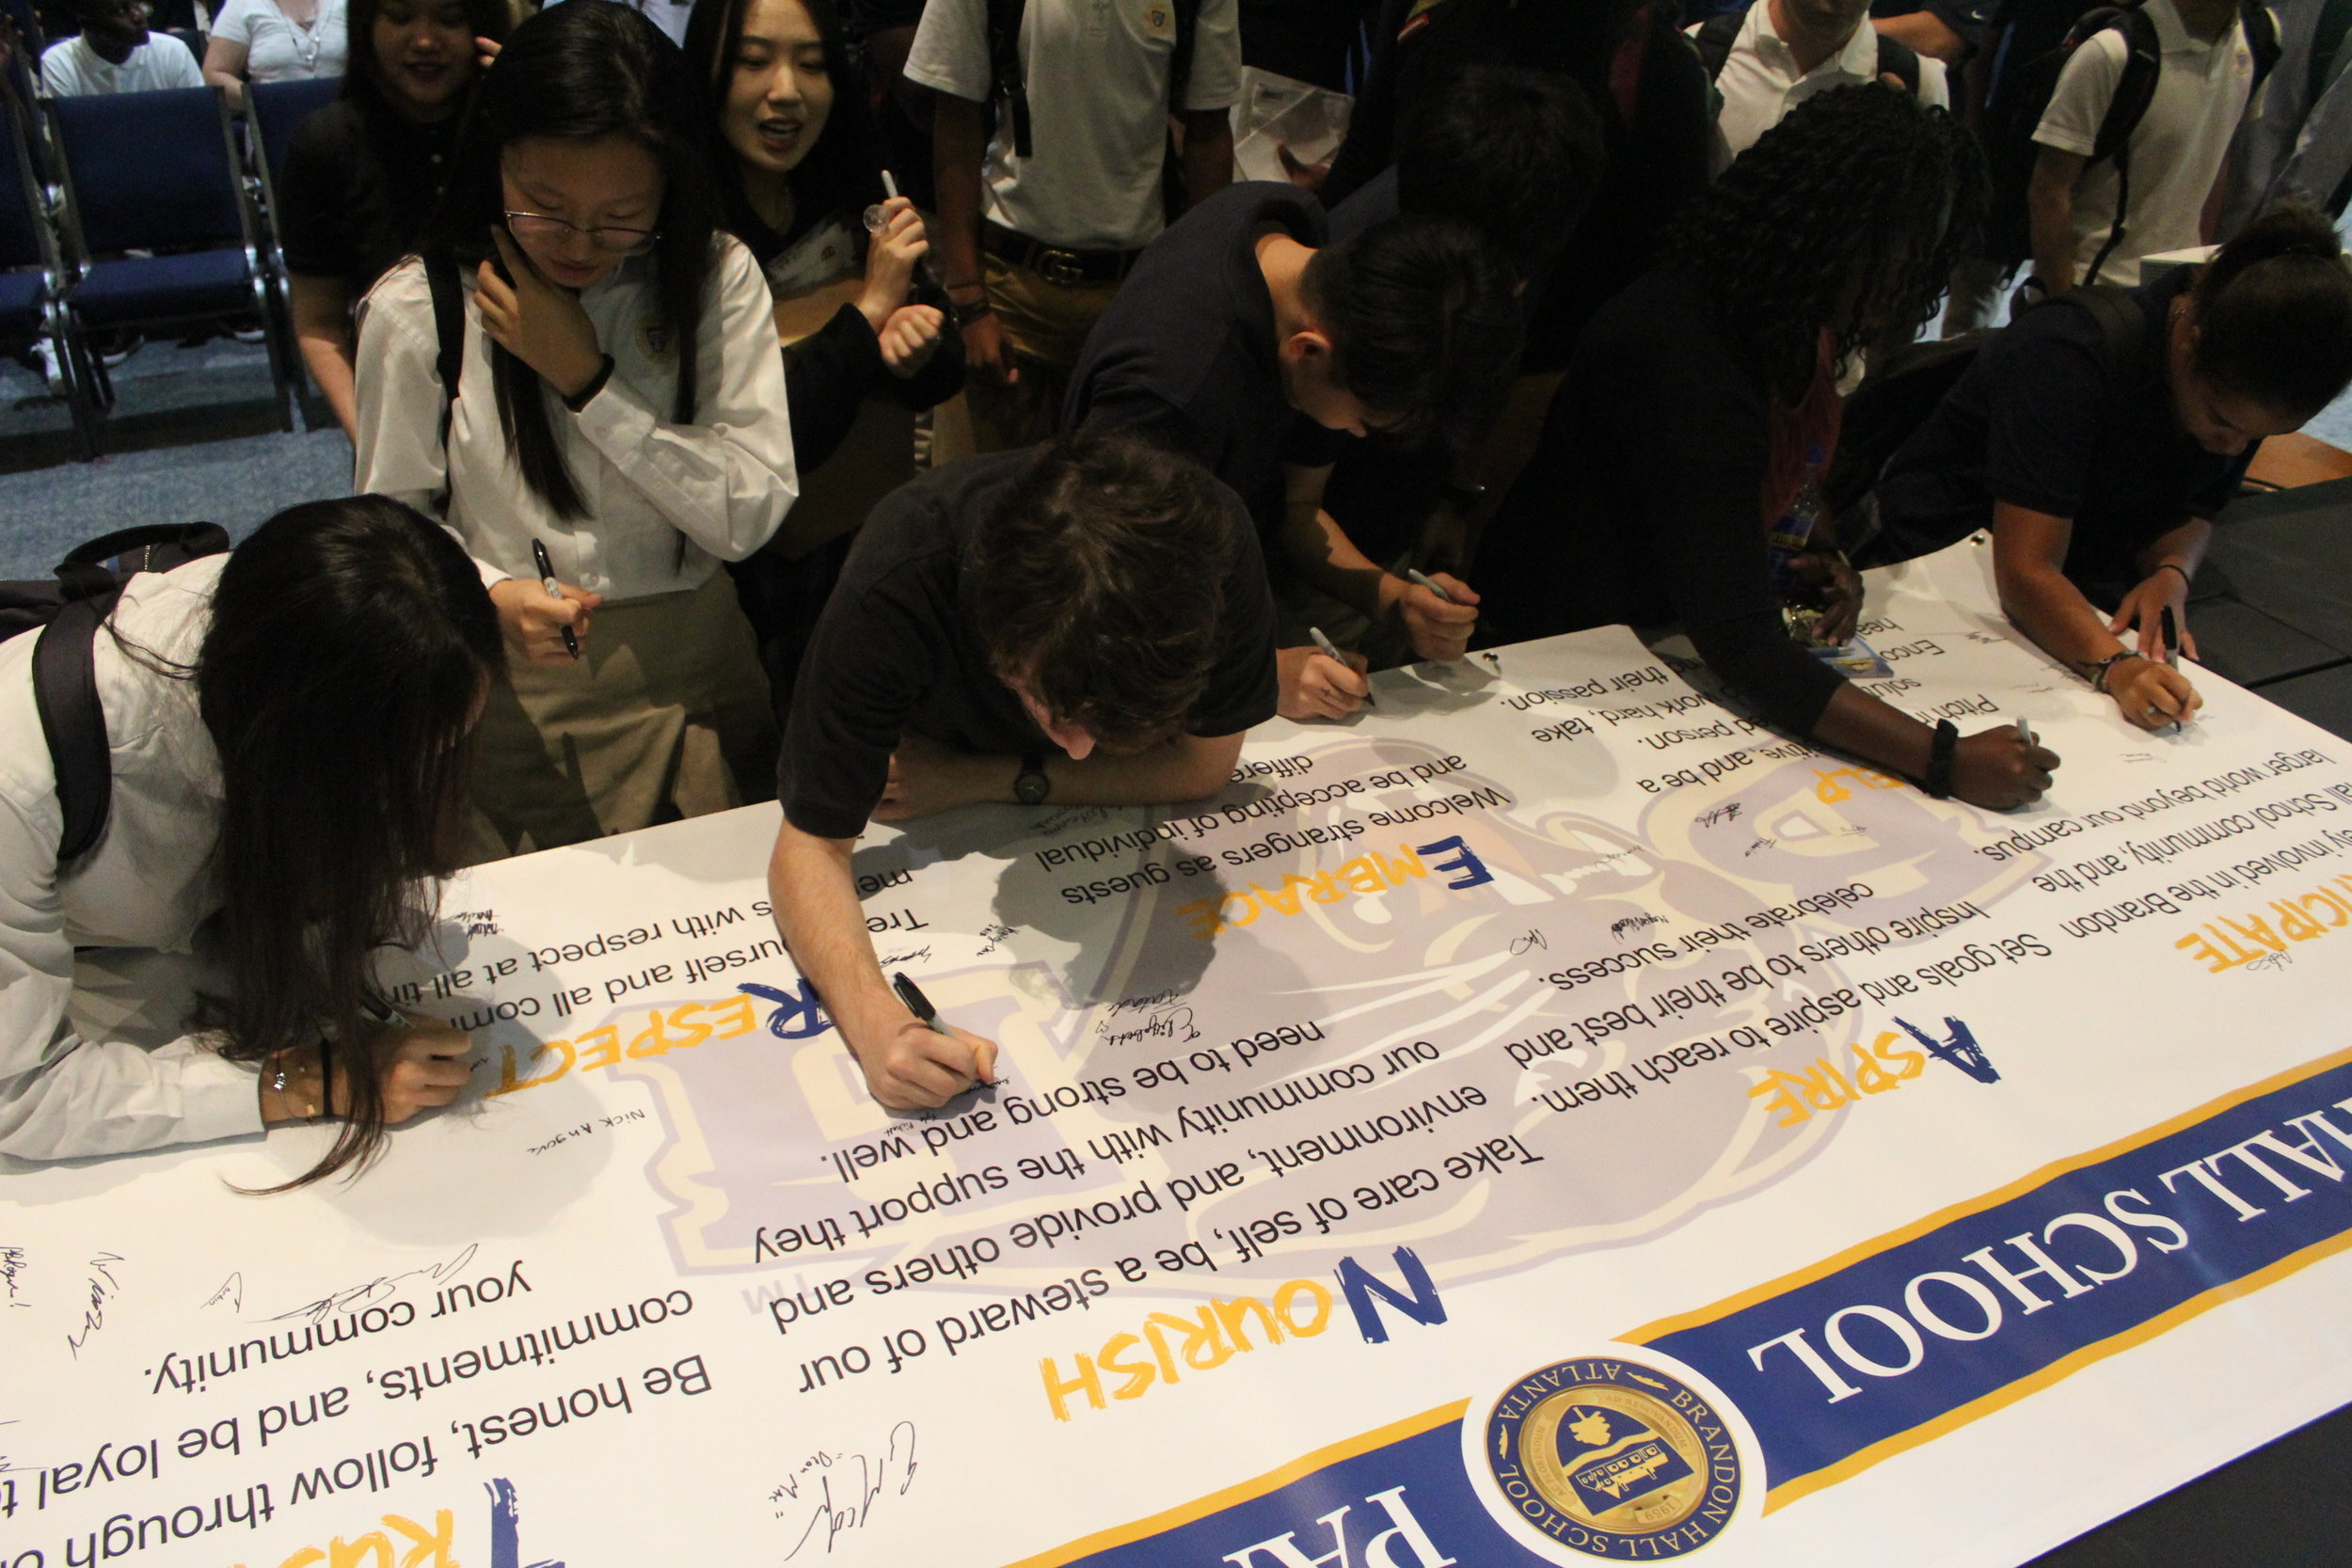 Signing of the Panther Pillars - At the beginning of the 2018-2019 school year, all students and staff signed the Panther Pillars, stating their commitment to living the Pillars on a daily basis.